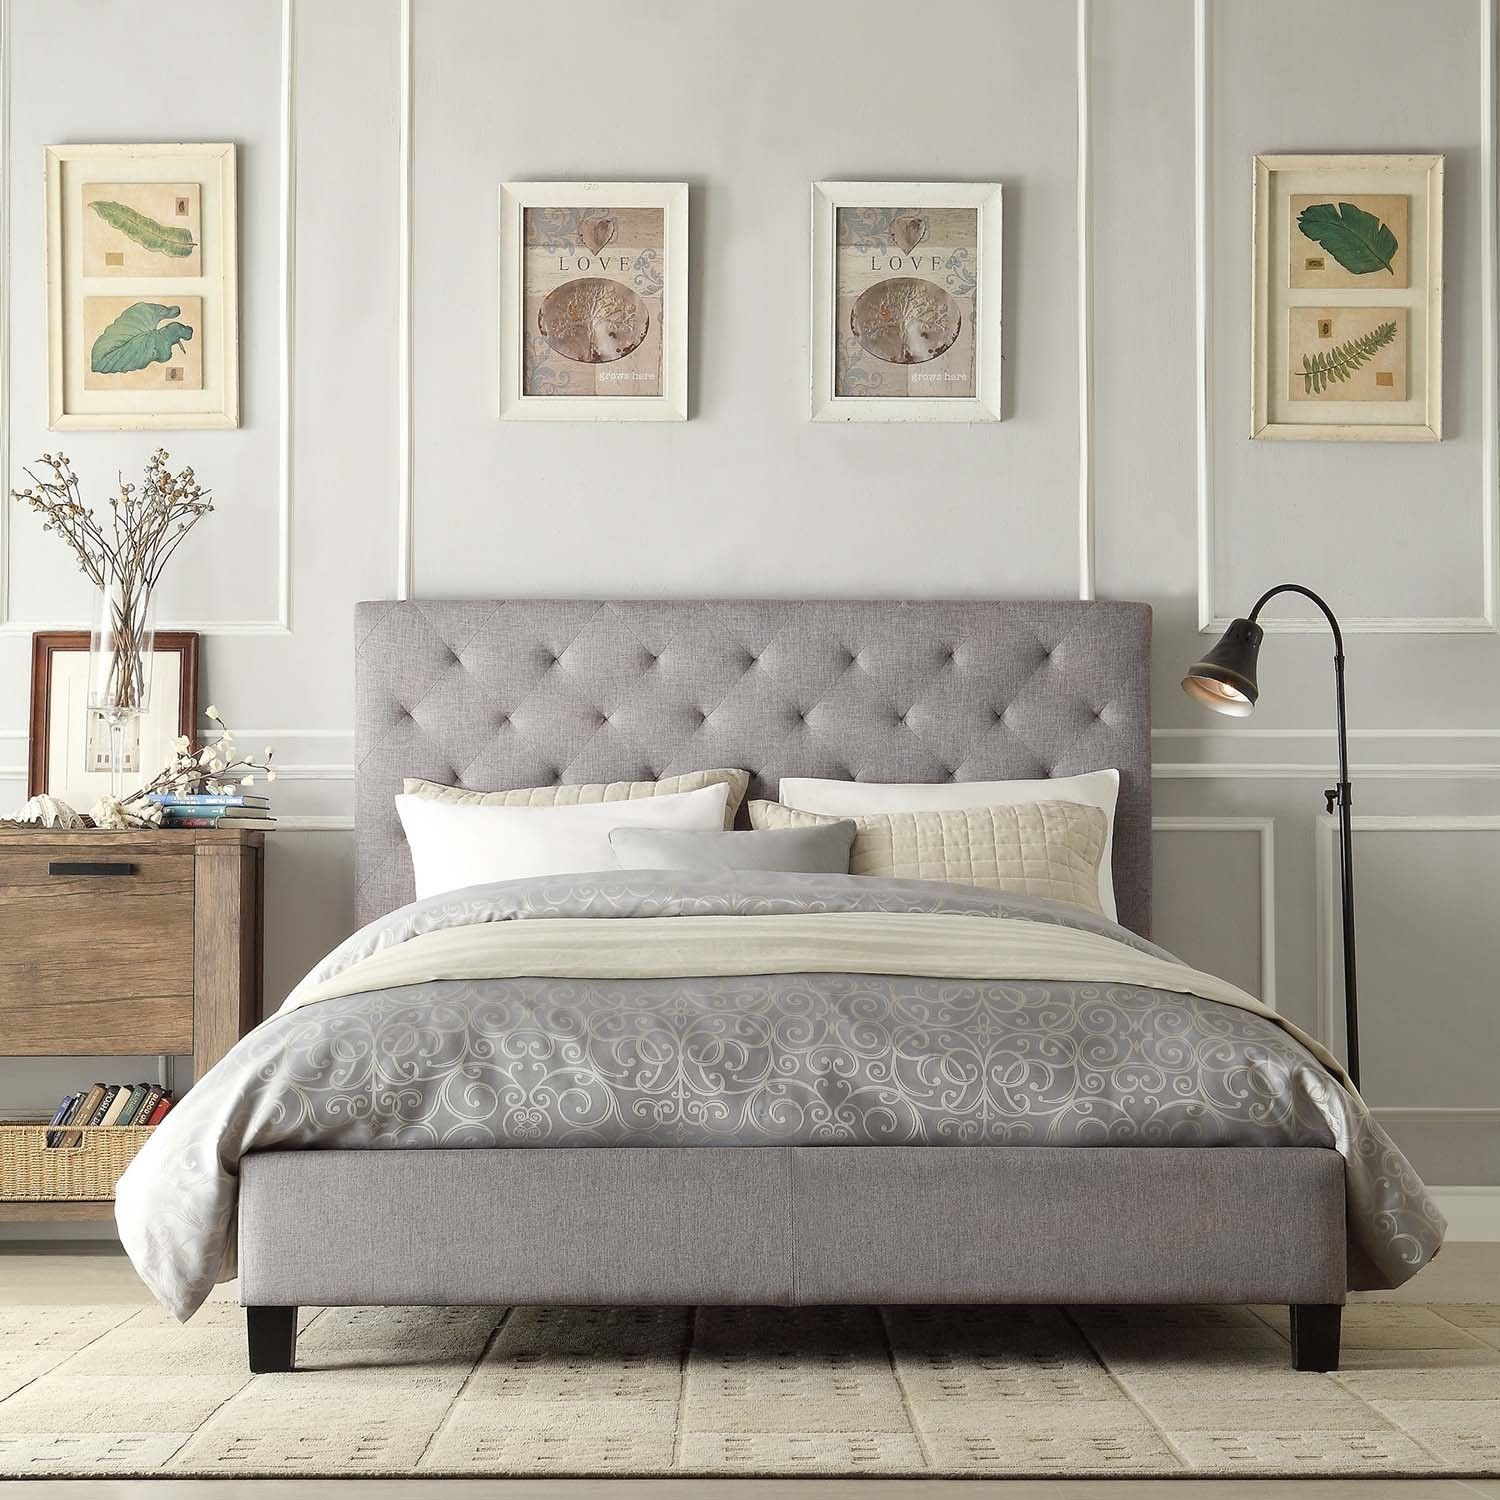 wingback bedroom upholstered diy with headboard design for white bath tufted velvet awesome scandinavian button your idea trim bed nailhead